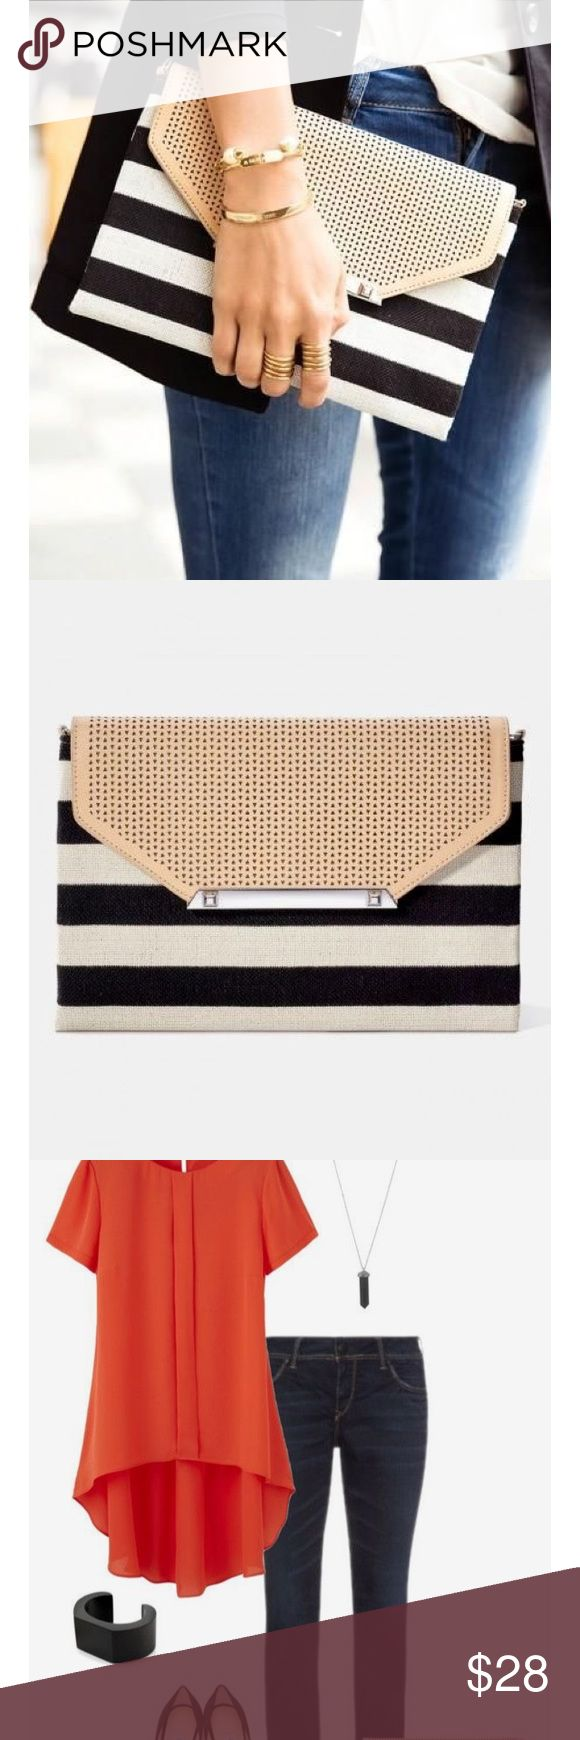 MUST HAVE!!! Stella and Dot Clutch Great Stella and Dot find! I am selling my authentic Stella and Dot striped Clutch bag. Almost never used and no sign of wear, everyone will think it's new! If you need to add to your classy Stella and Dot collection, this bag is going for around $40 on EBay.. I'm willing to negotiate, just send me a message you never know what deal you can get! Stella & Dot Bags Mini Bags